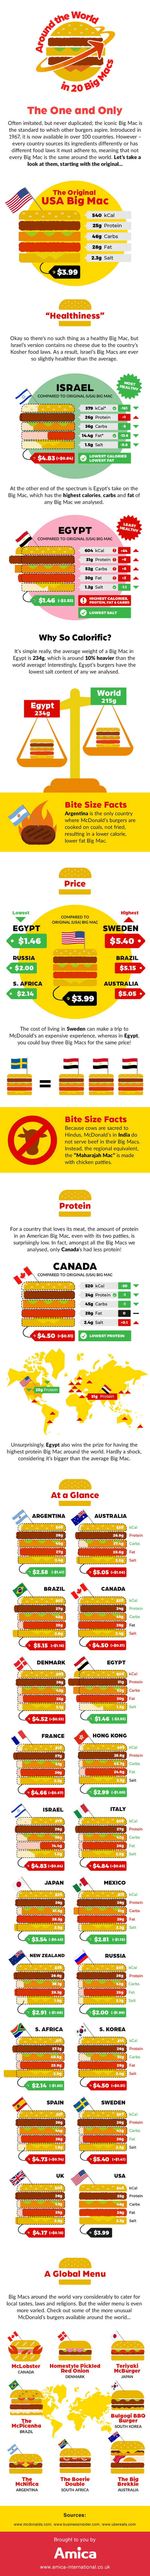 Around The World In 20 Big Macs: Just How Much Do They Vary?